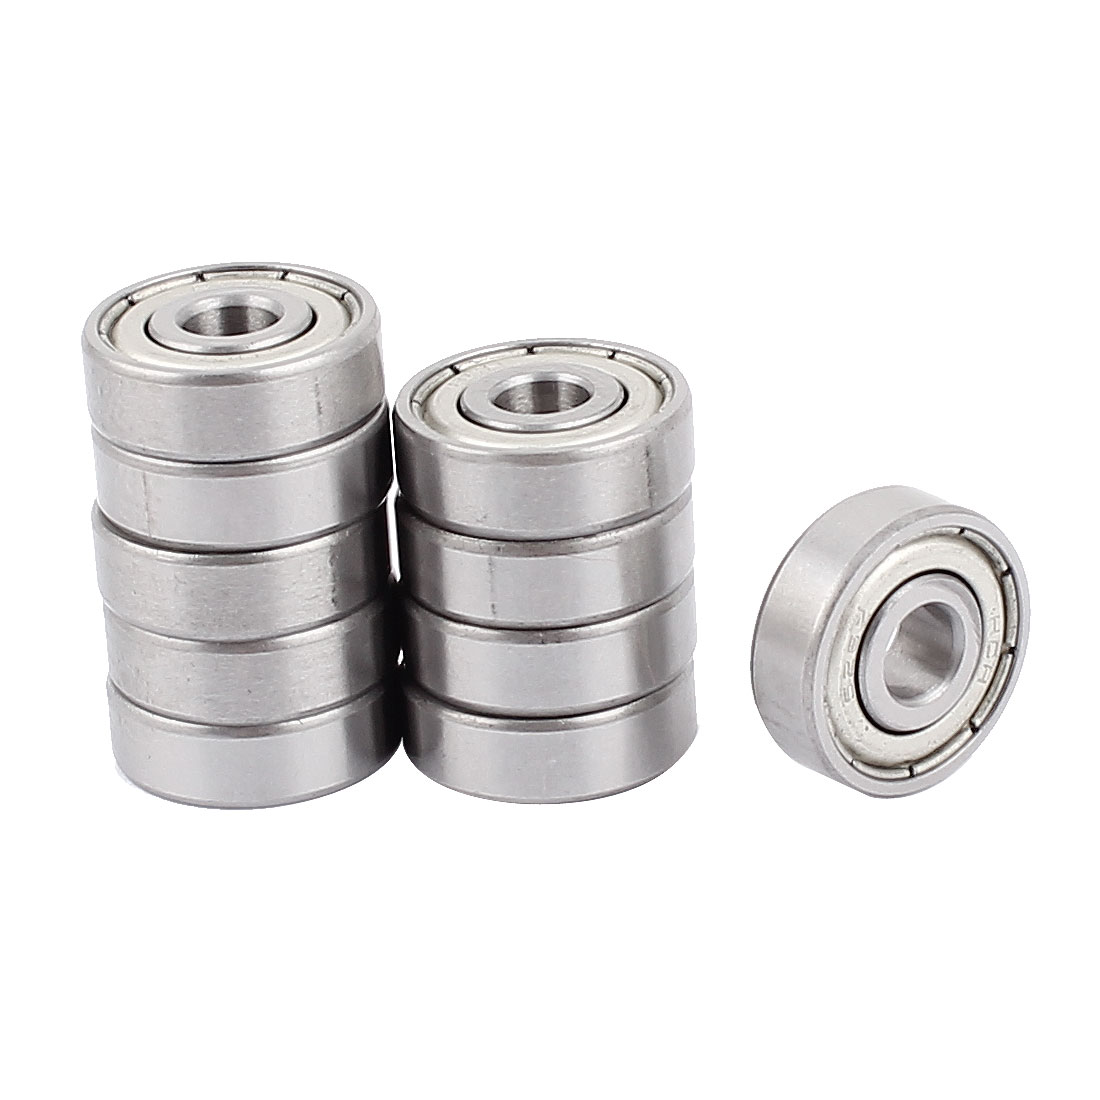 10Pcs Shielded Miniature 6262 Deep Groove Ball Wheel Bearing 19mm x 6mm x 6mm